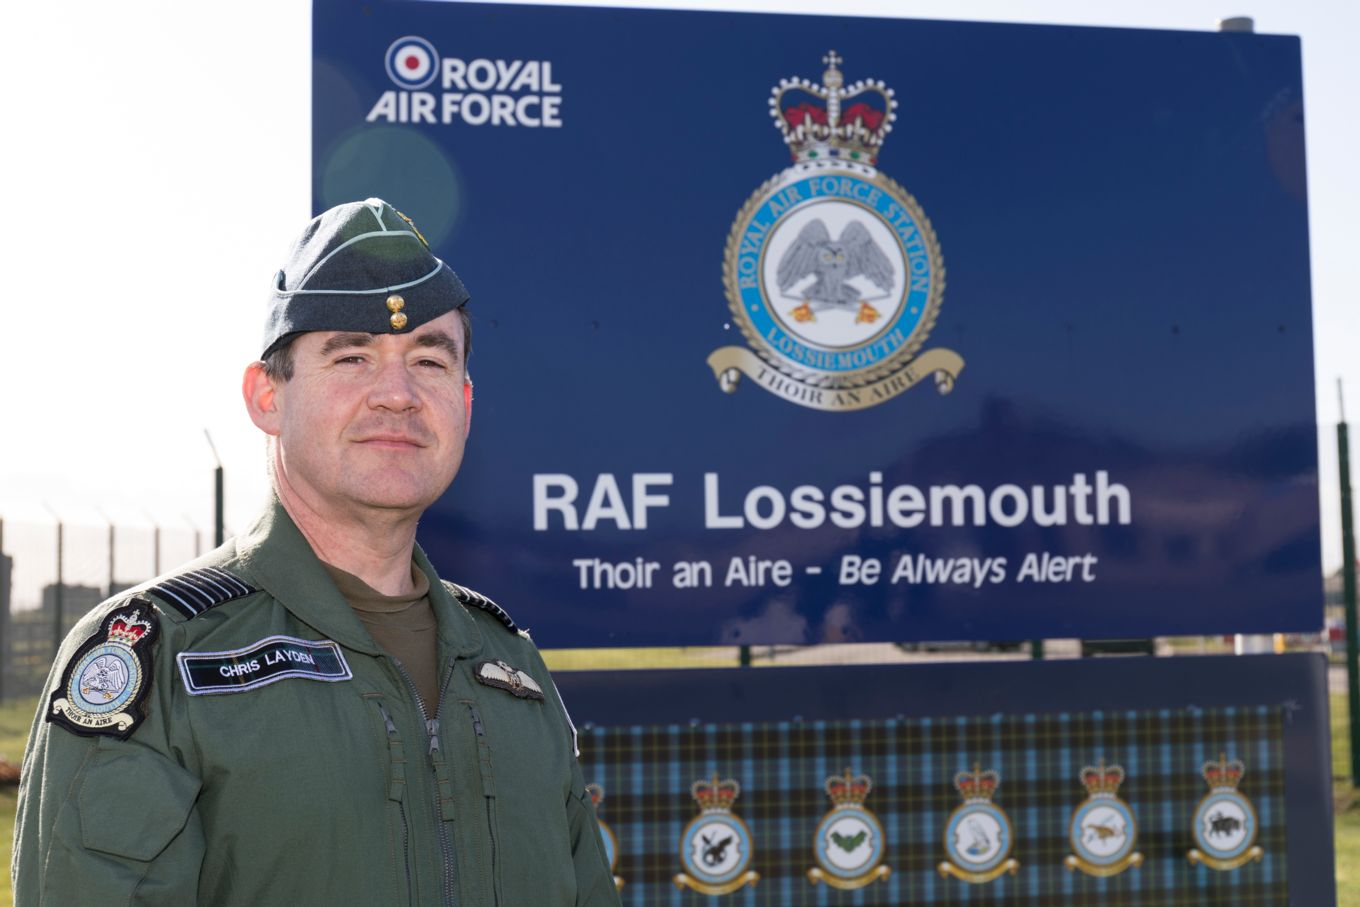 RAF-LOSSIMOUTH-SIGN